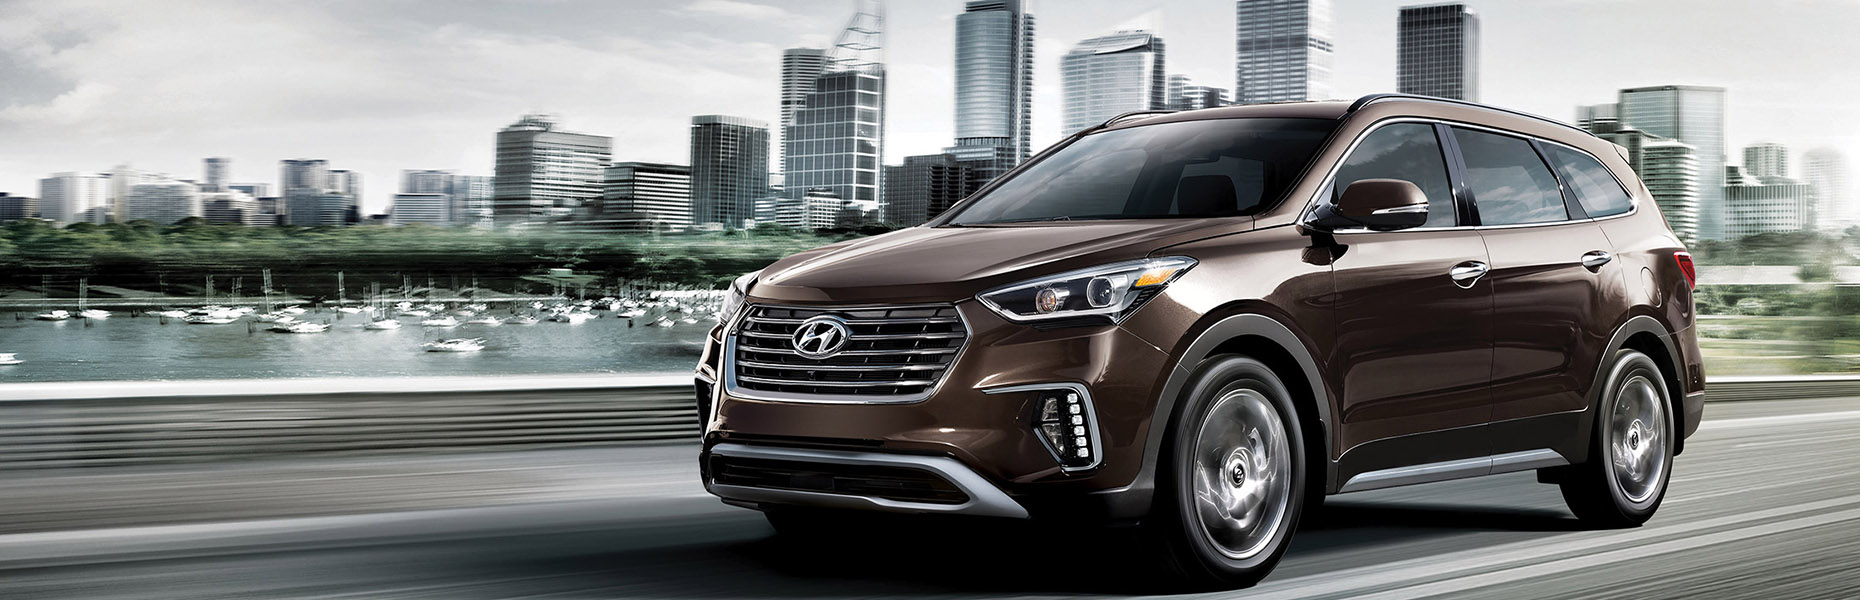 See the 2018 Santa Fe XL at Pathway Hyunda in Orleans Ottawa, ONi